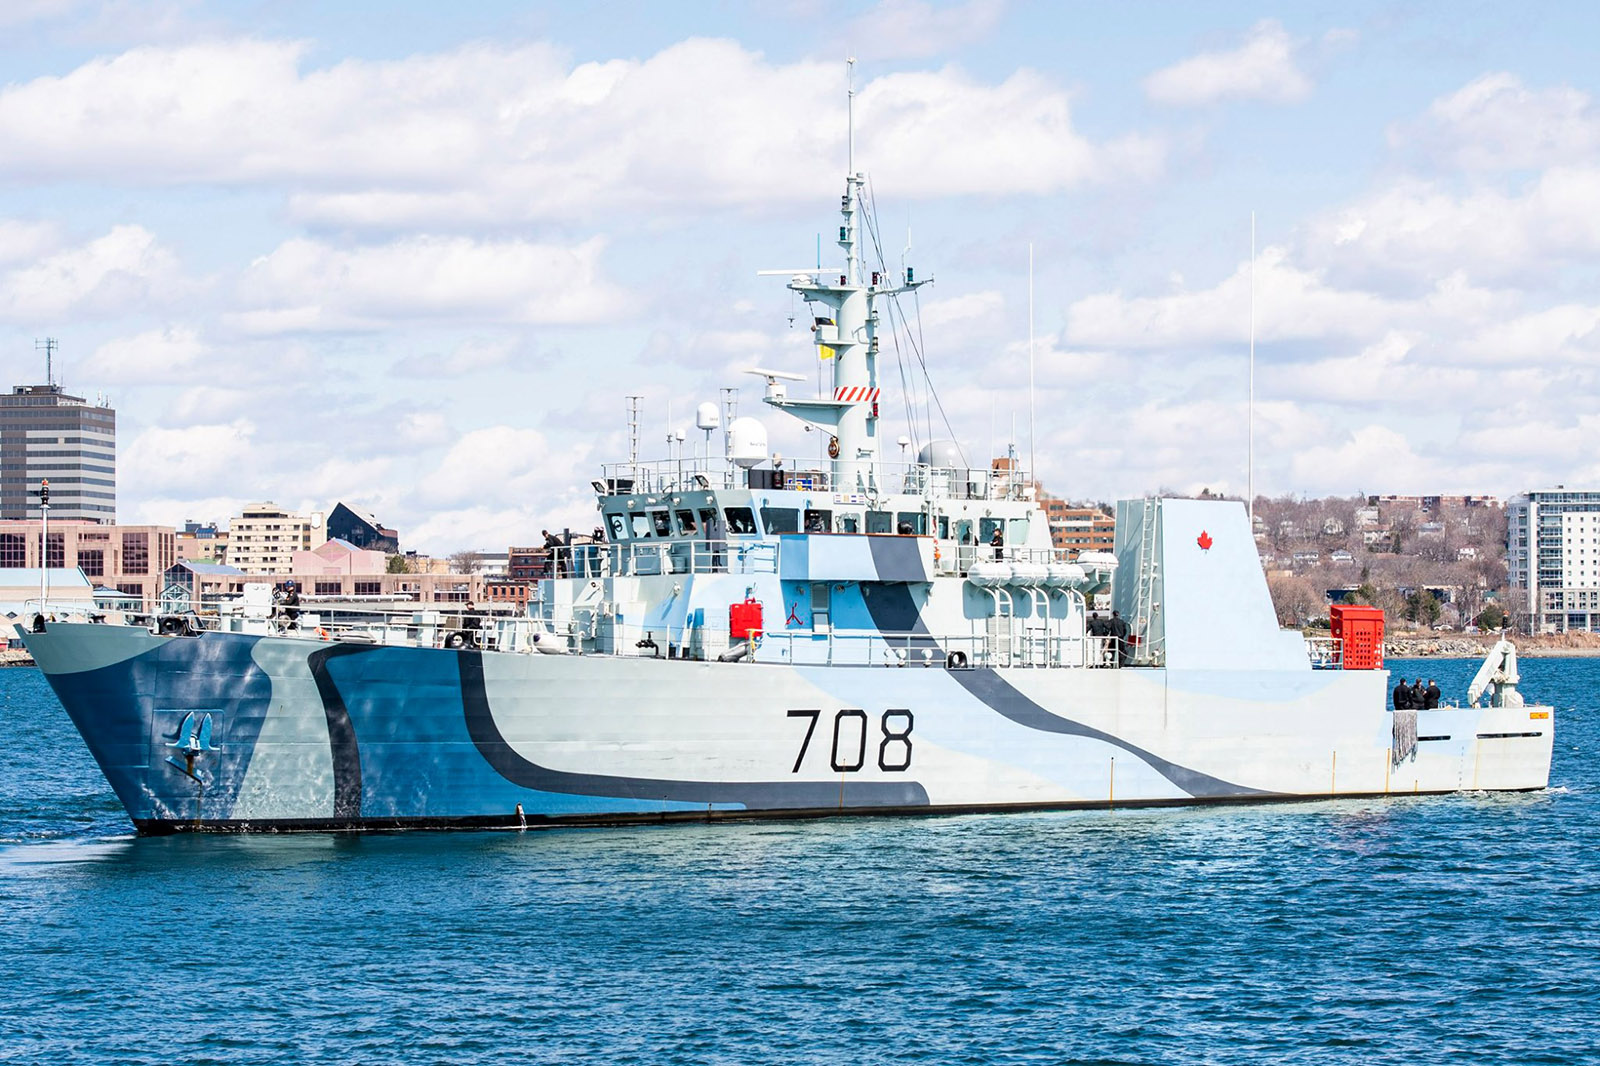 HMCS Moncton headed to sea to be prepared to support Op Laser. The ships will remain in Nova Scotian waters where our sailors stand ready to assist Canadians when called upon.